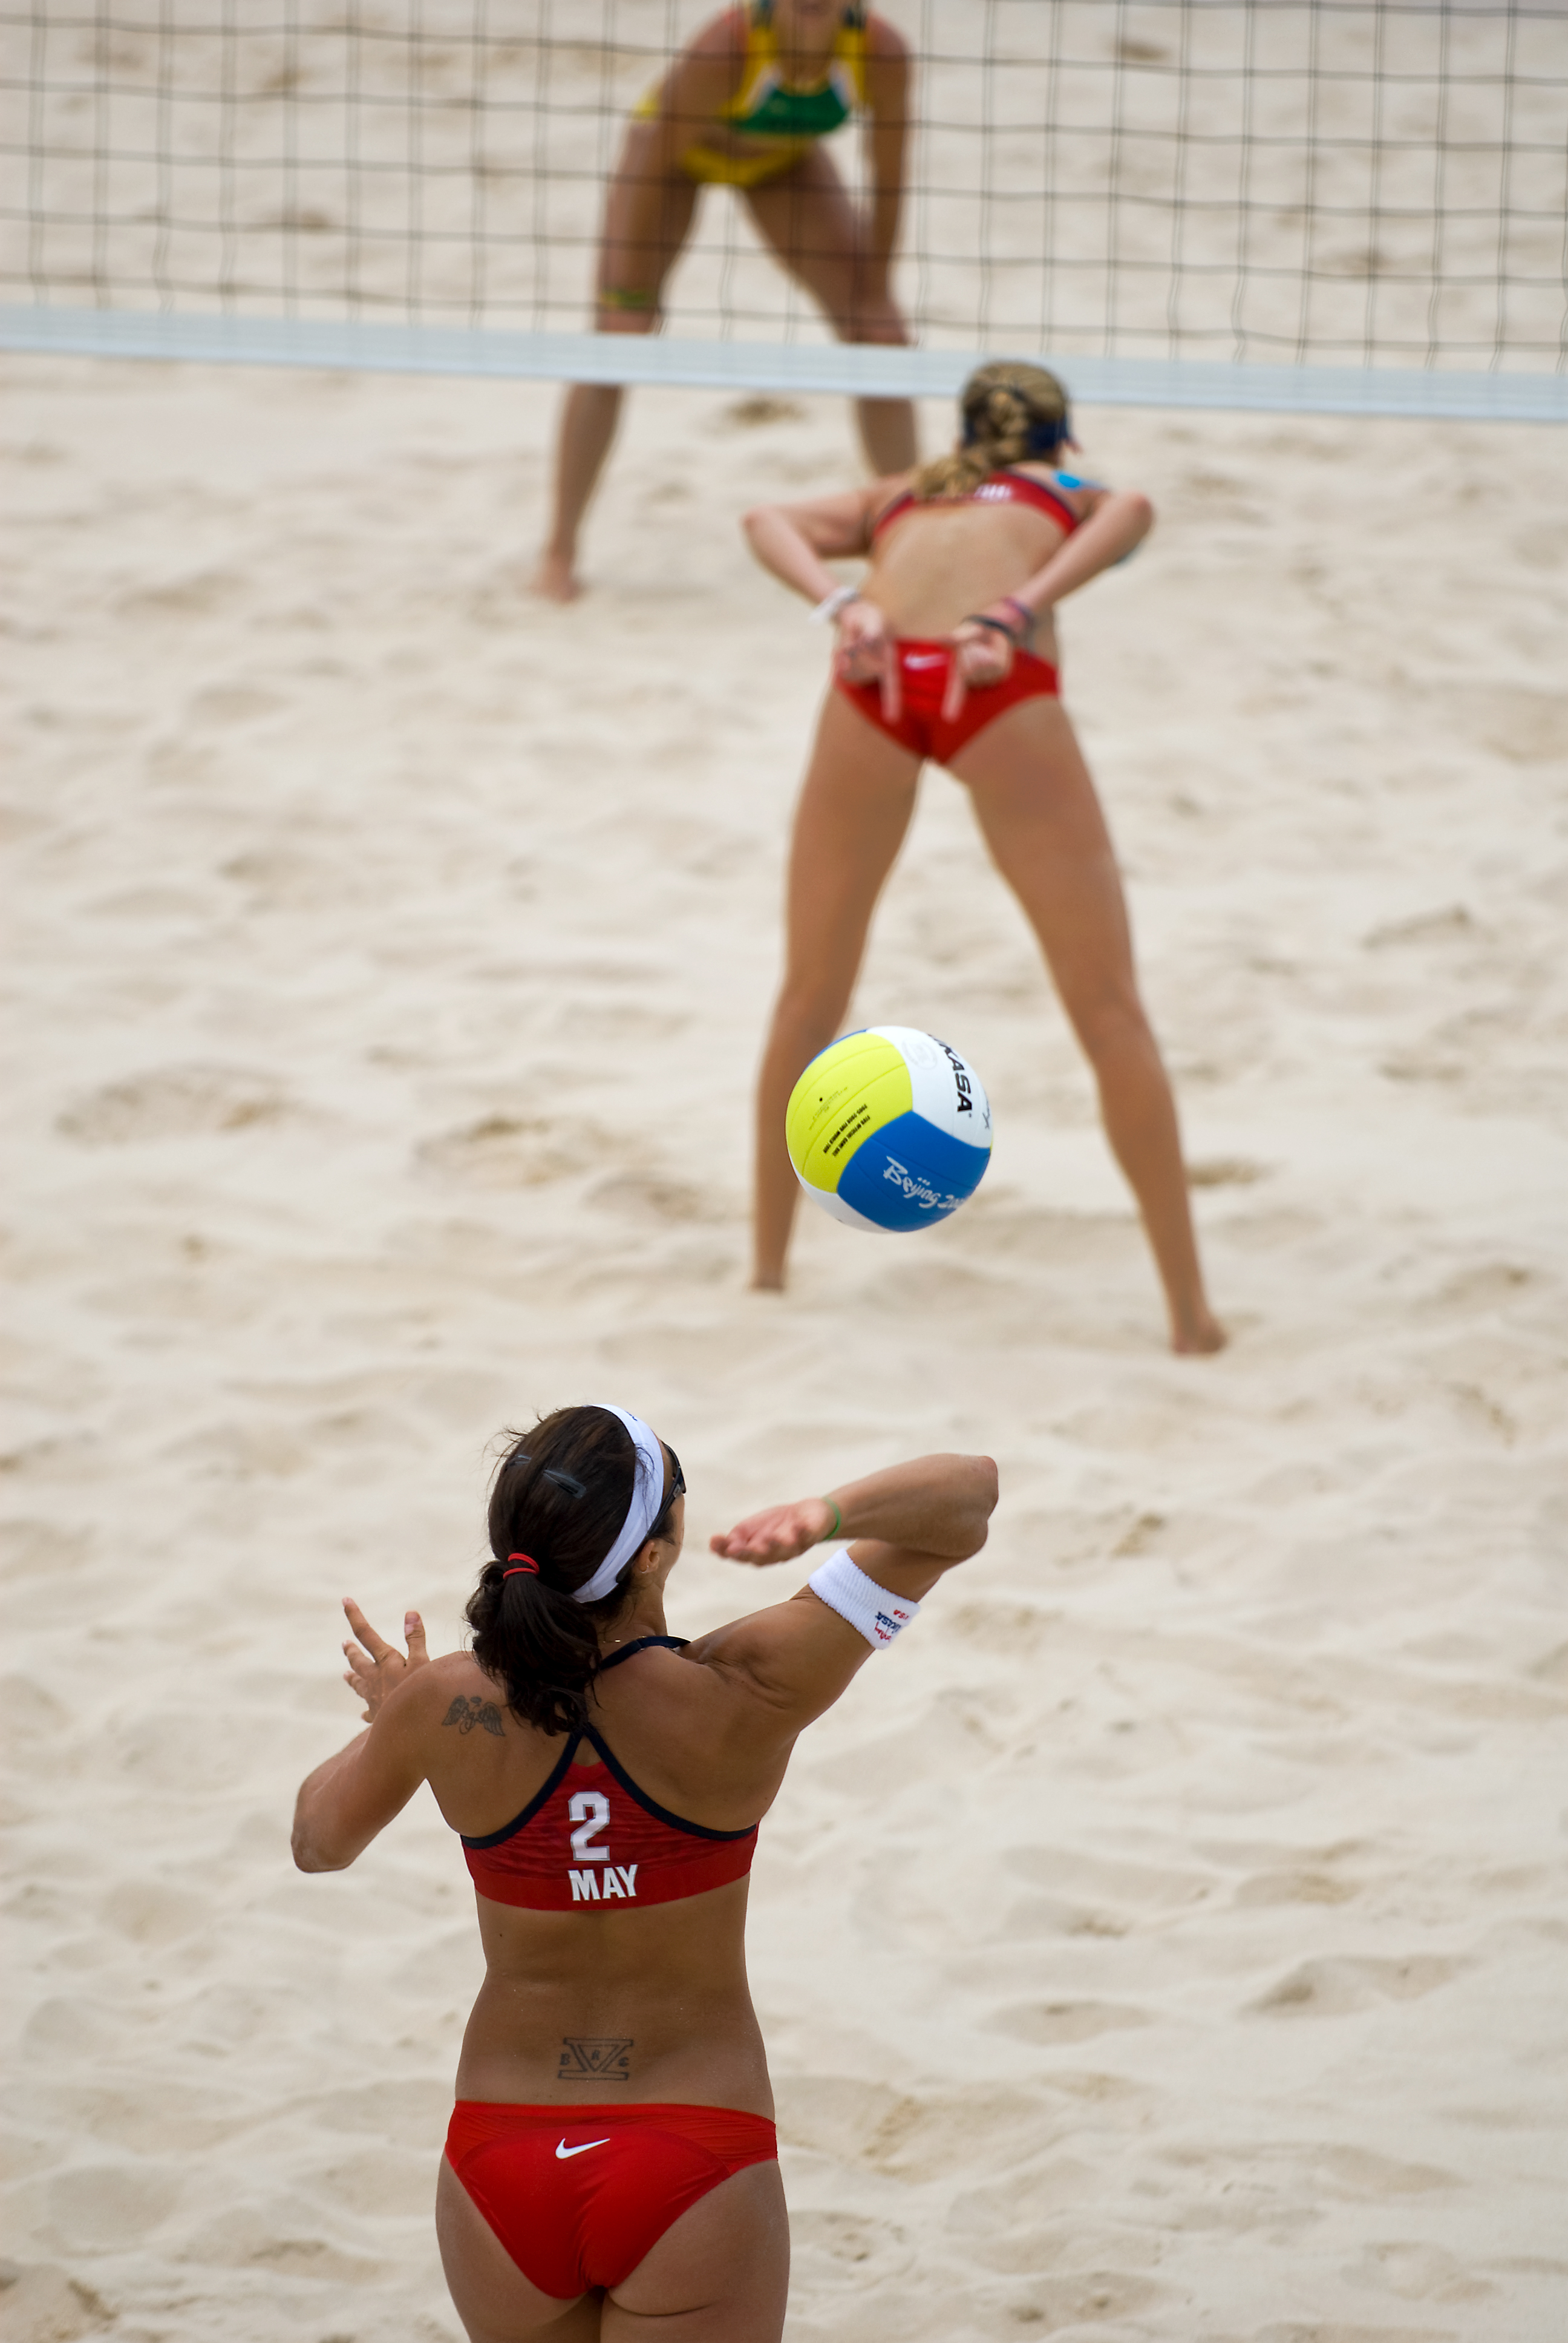 Paparazzi Misty May Treanor nudes (32 images), Boobs